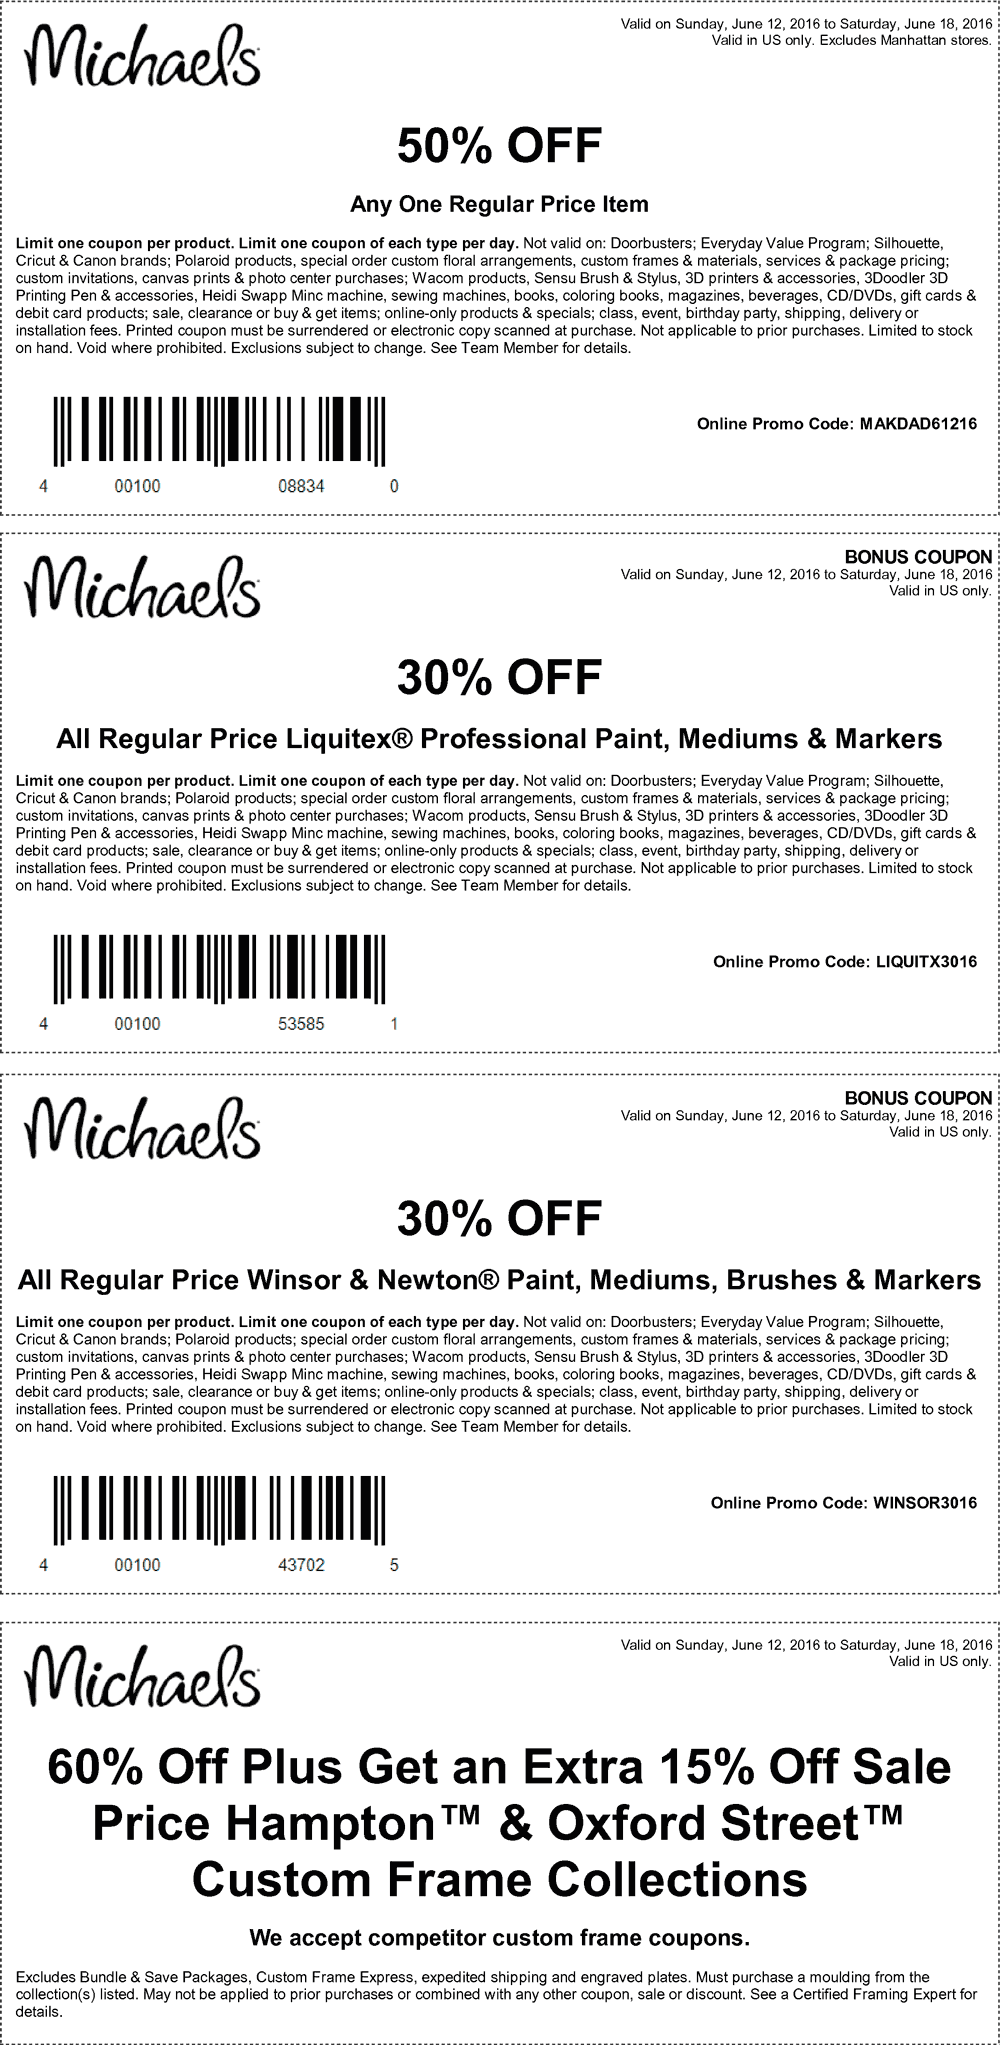 Michaels Coupon March 2017 50% off a single item & more at Michaels, or online via promo code MAKDAD61216